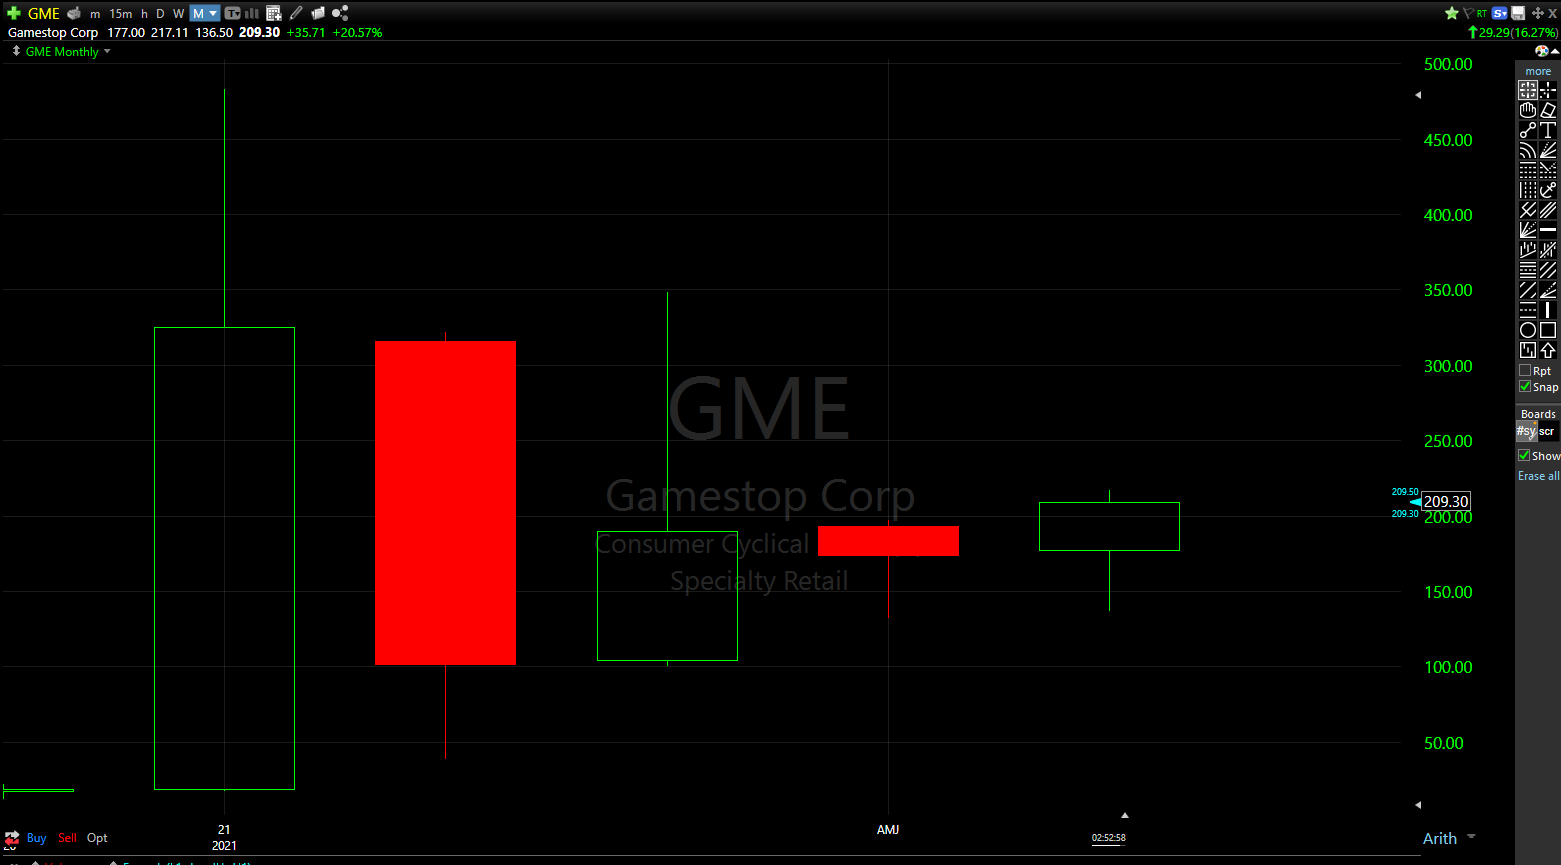 GME shares have an active inside month and up buy signal above $196.97/share.